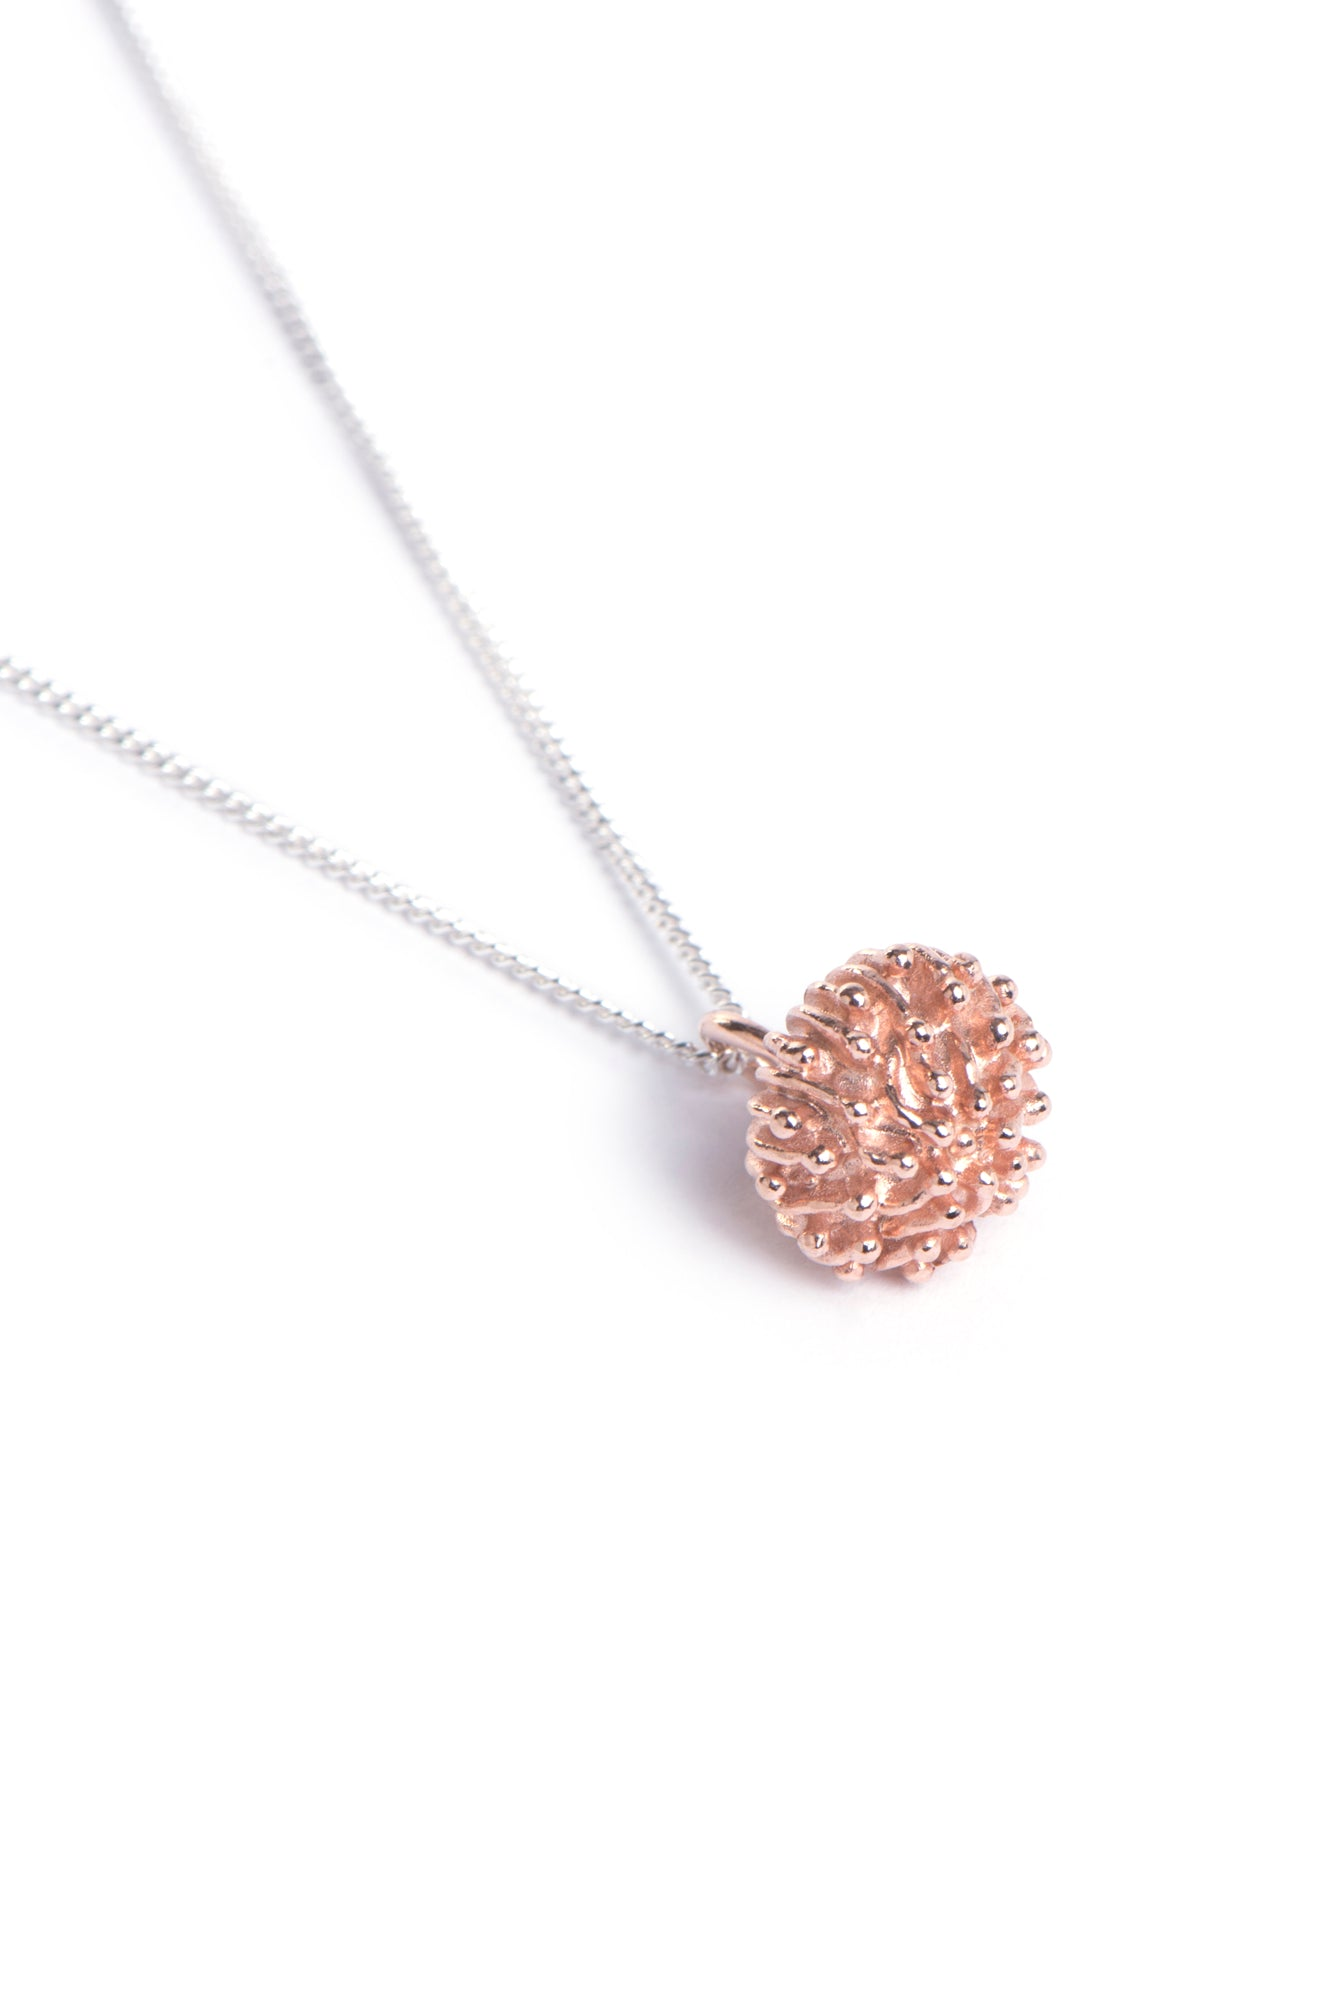 Protea Pincushion Necklaces-Rose Gold plated